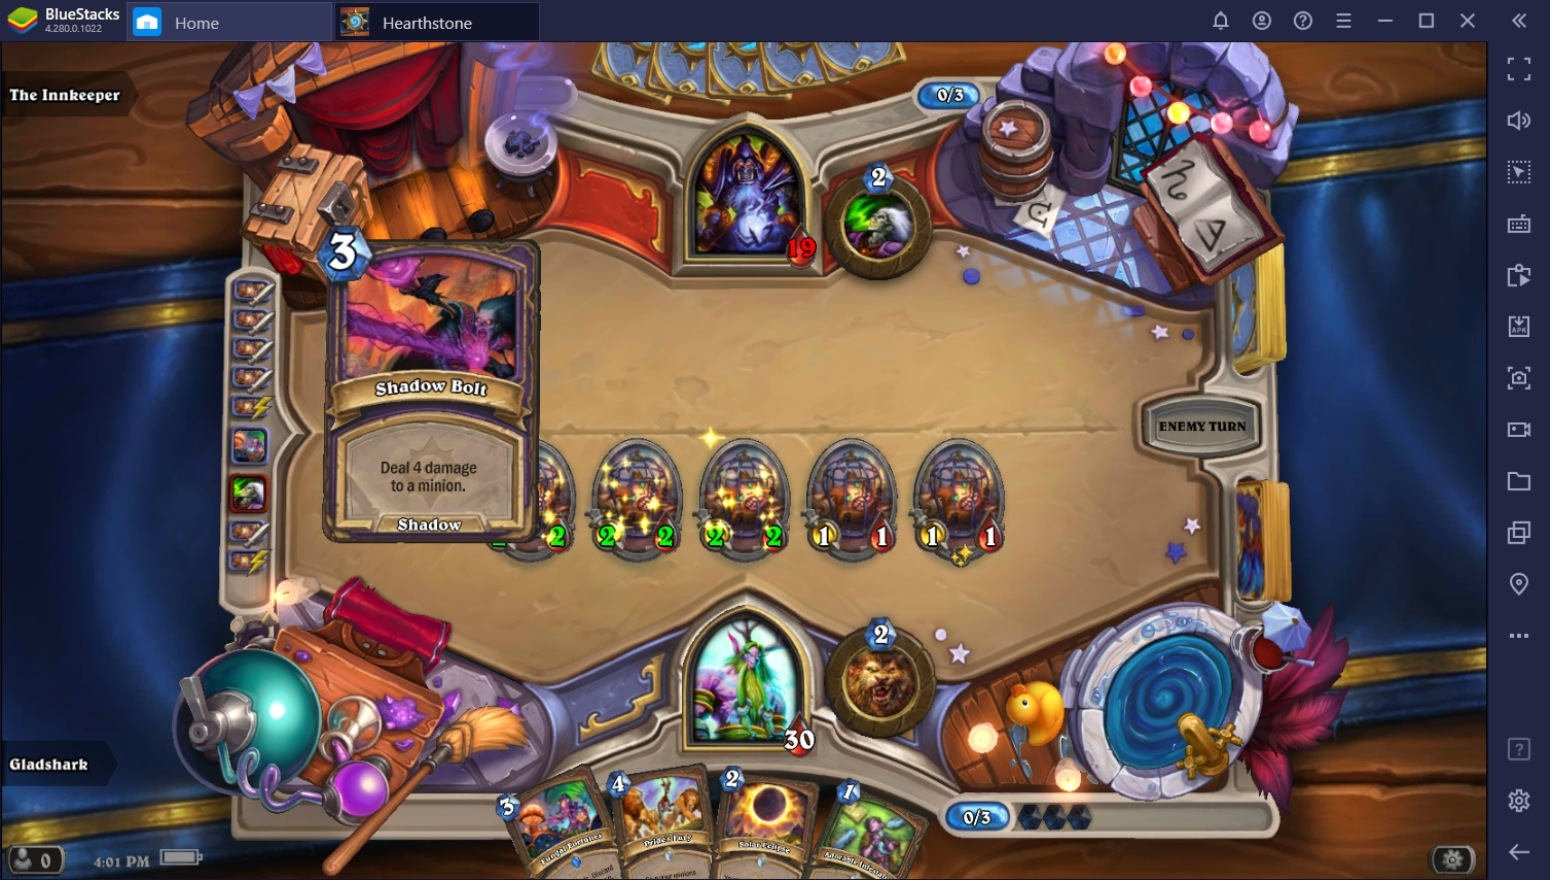 BlueStacks' Beginners Guide to Playing Hearthstone